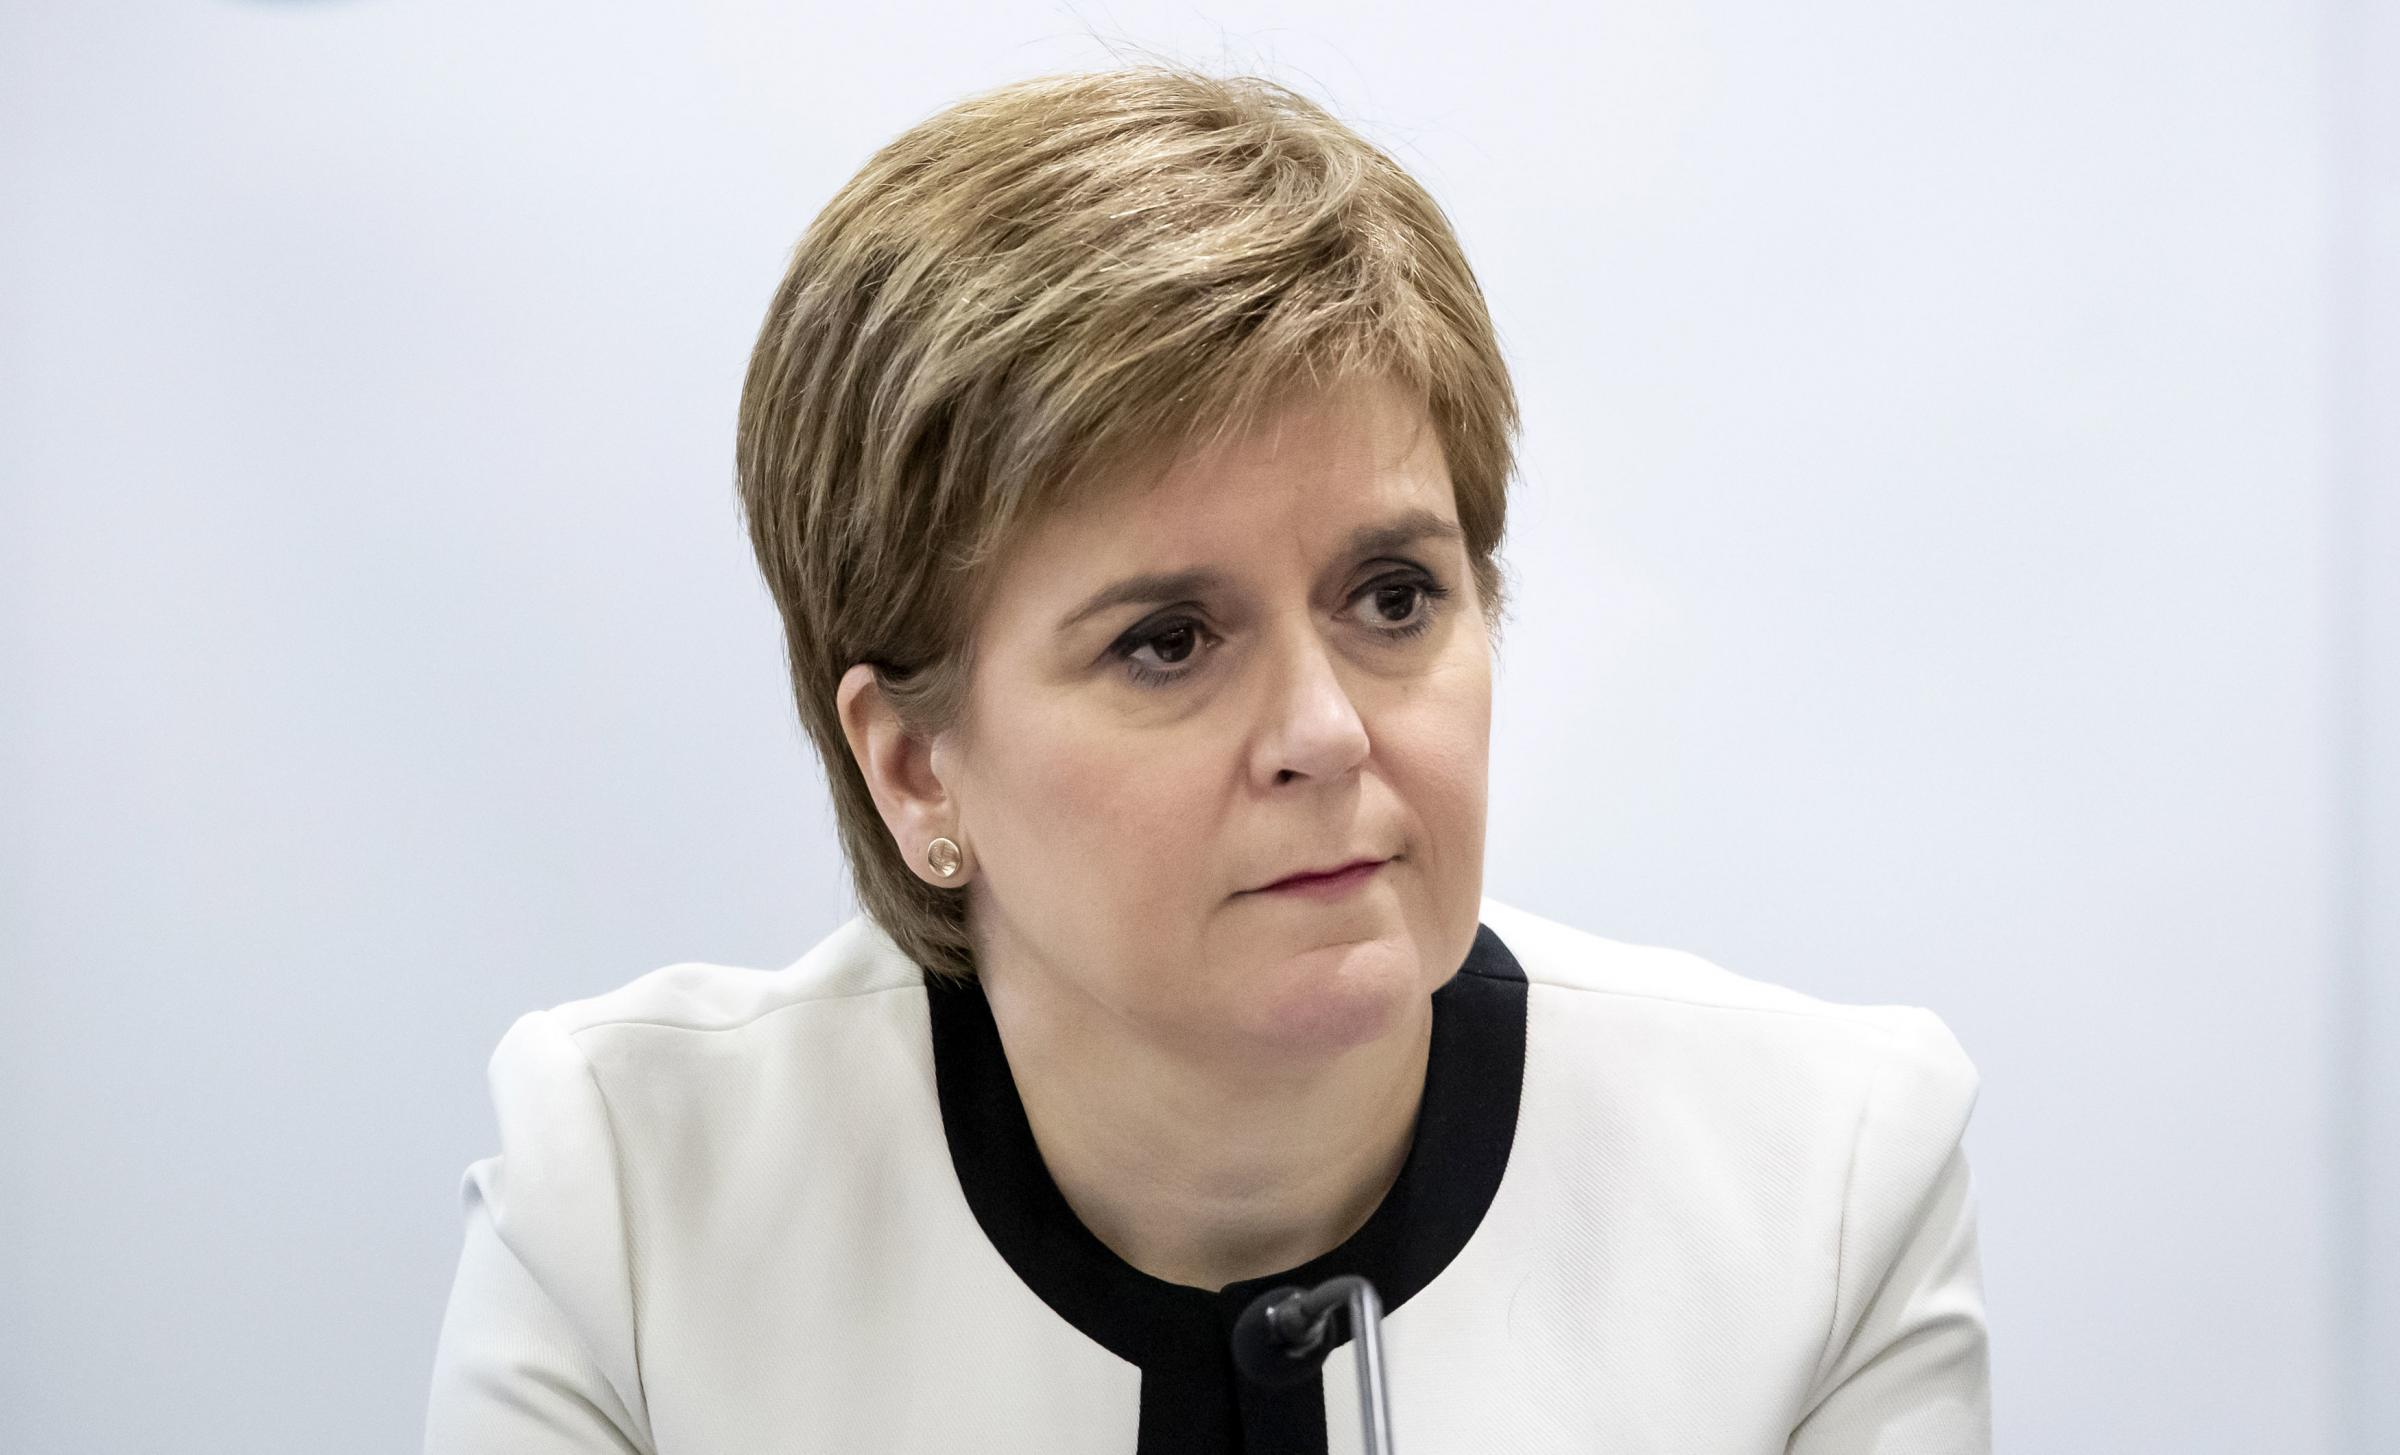 Nicola Sturgeon responds to sentencing of Catalan leaders